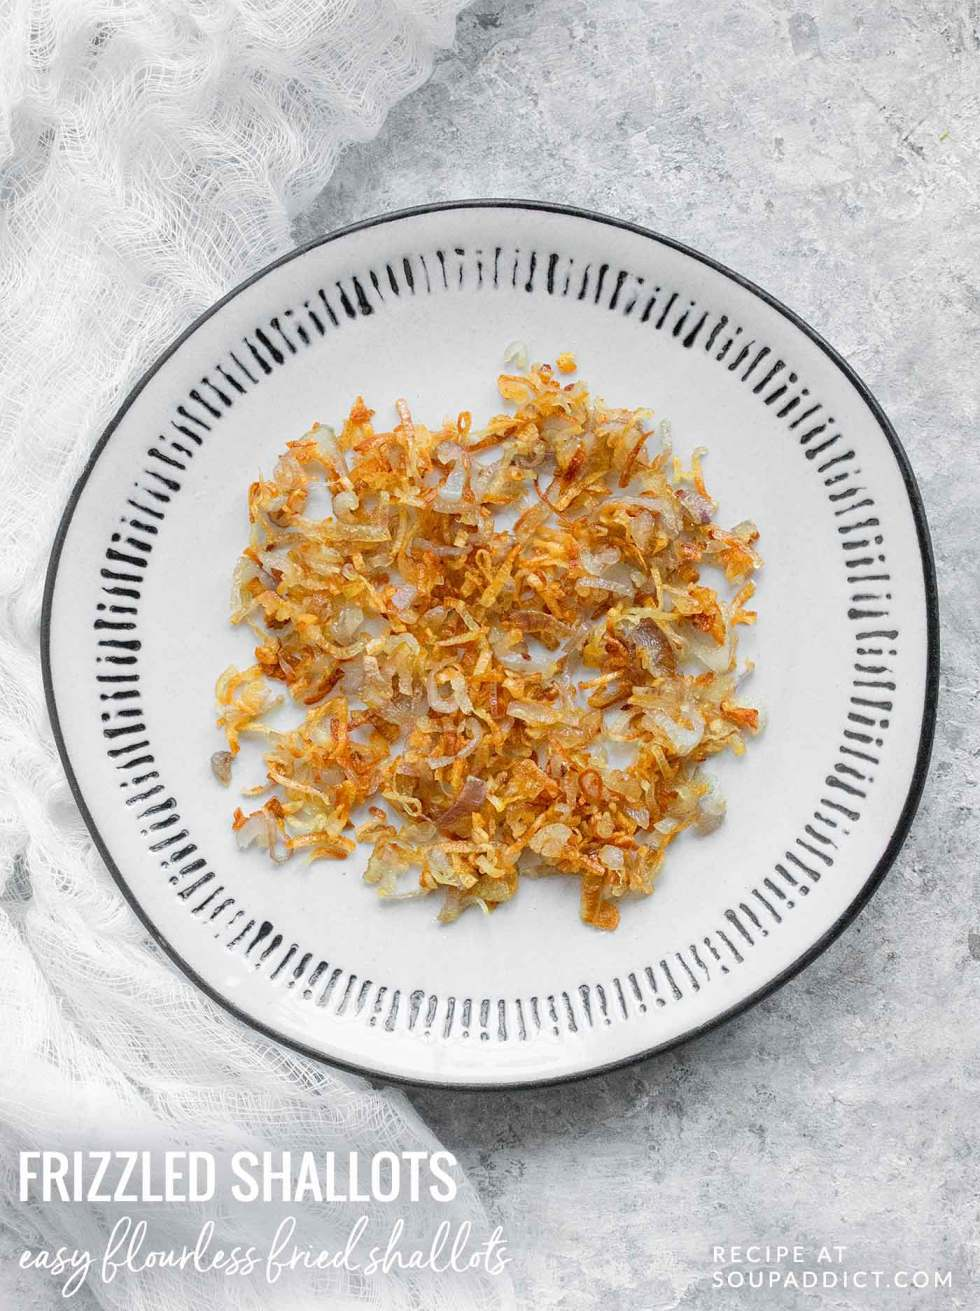 Frizzled Shallots - Recipe at SoupAddict.com